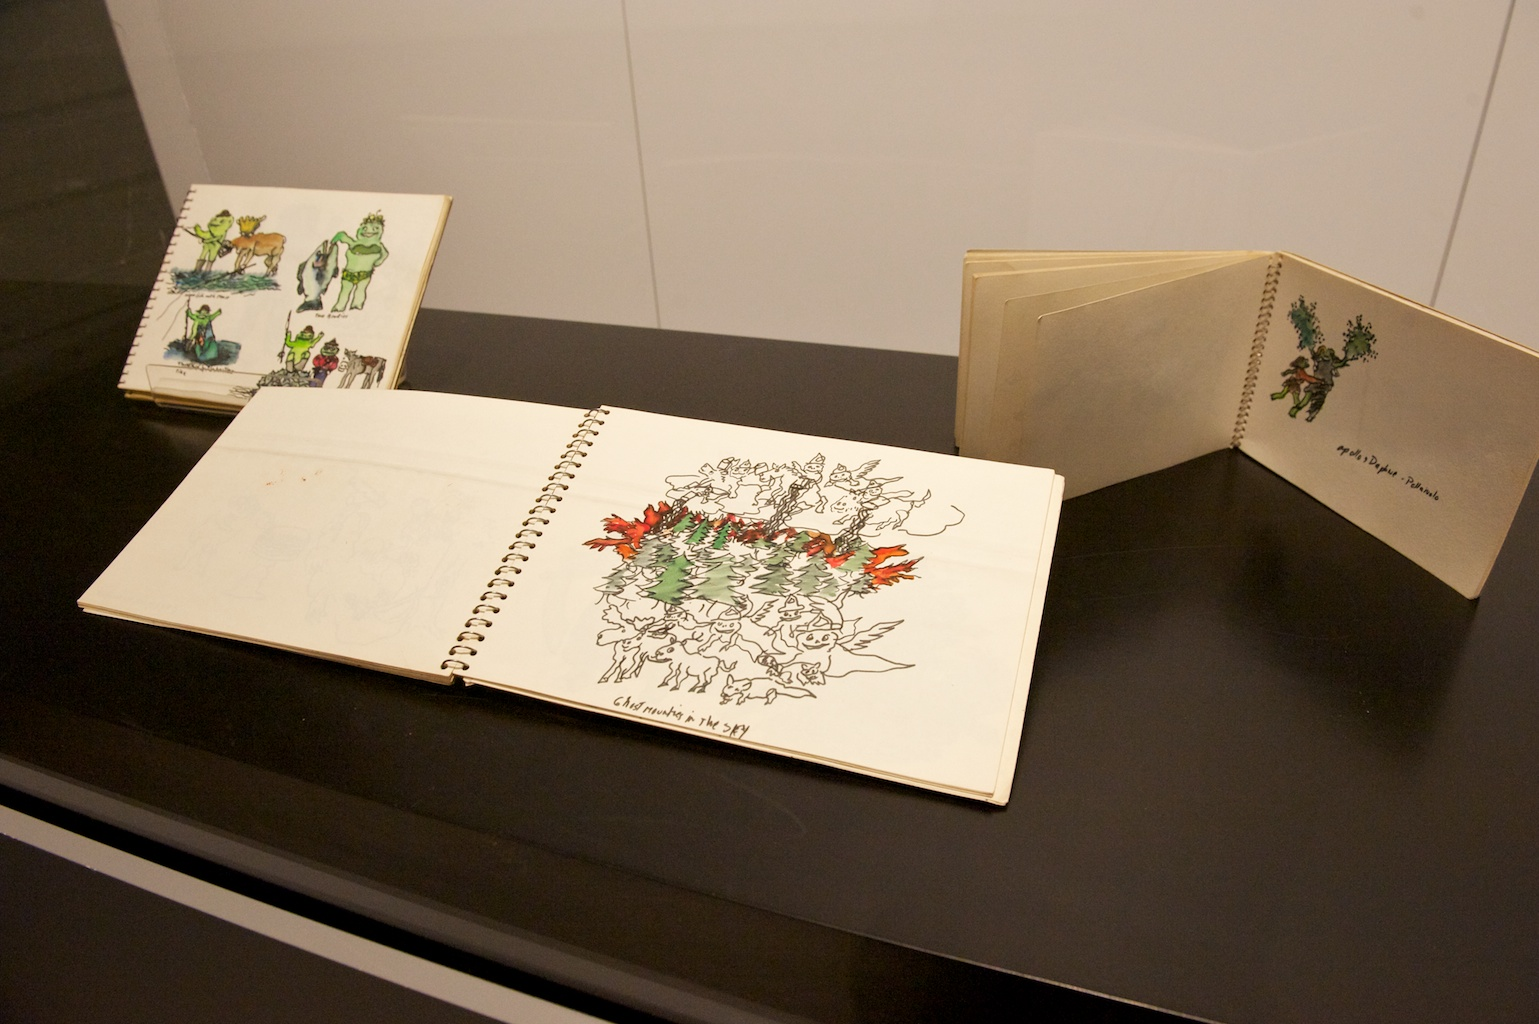 FINE LINES: DRAWINGS FROM THE NICKLE COLLECTION AND THE MACKIE DONATION